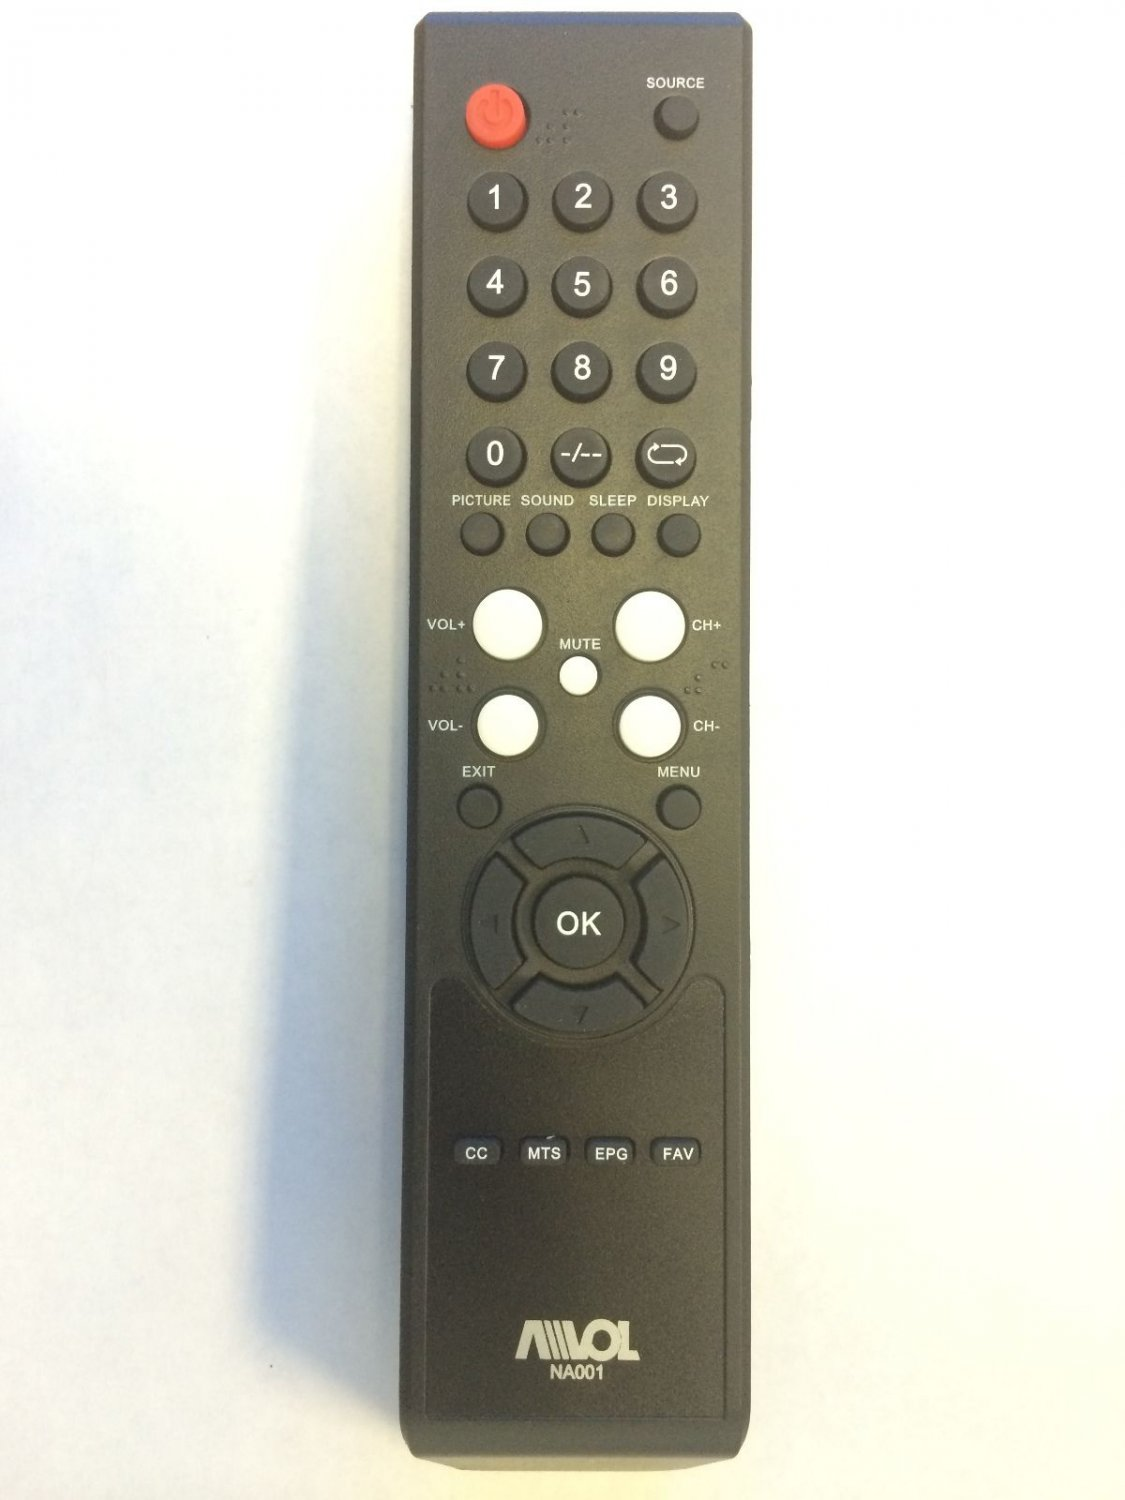 Original New Avol TV Remote Control NA001